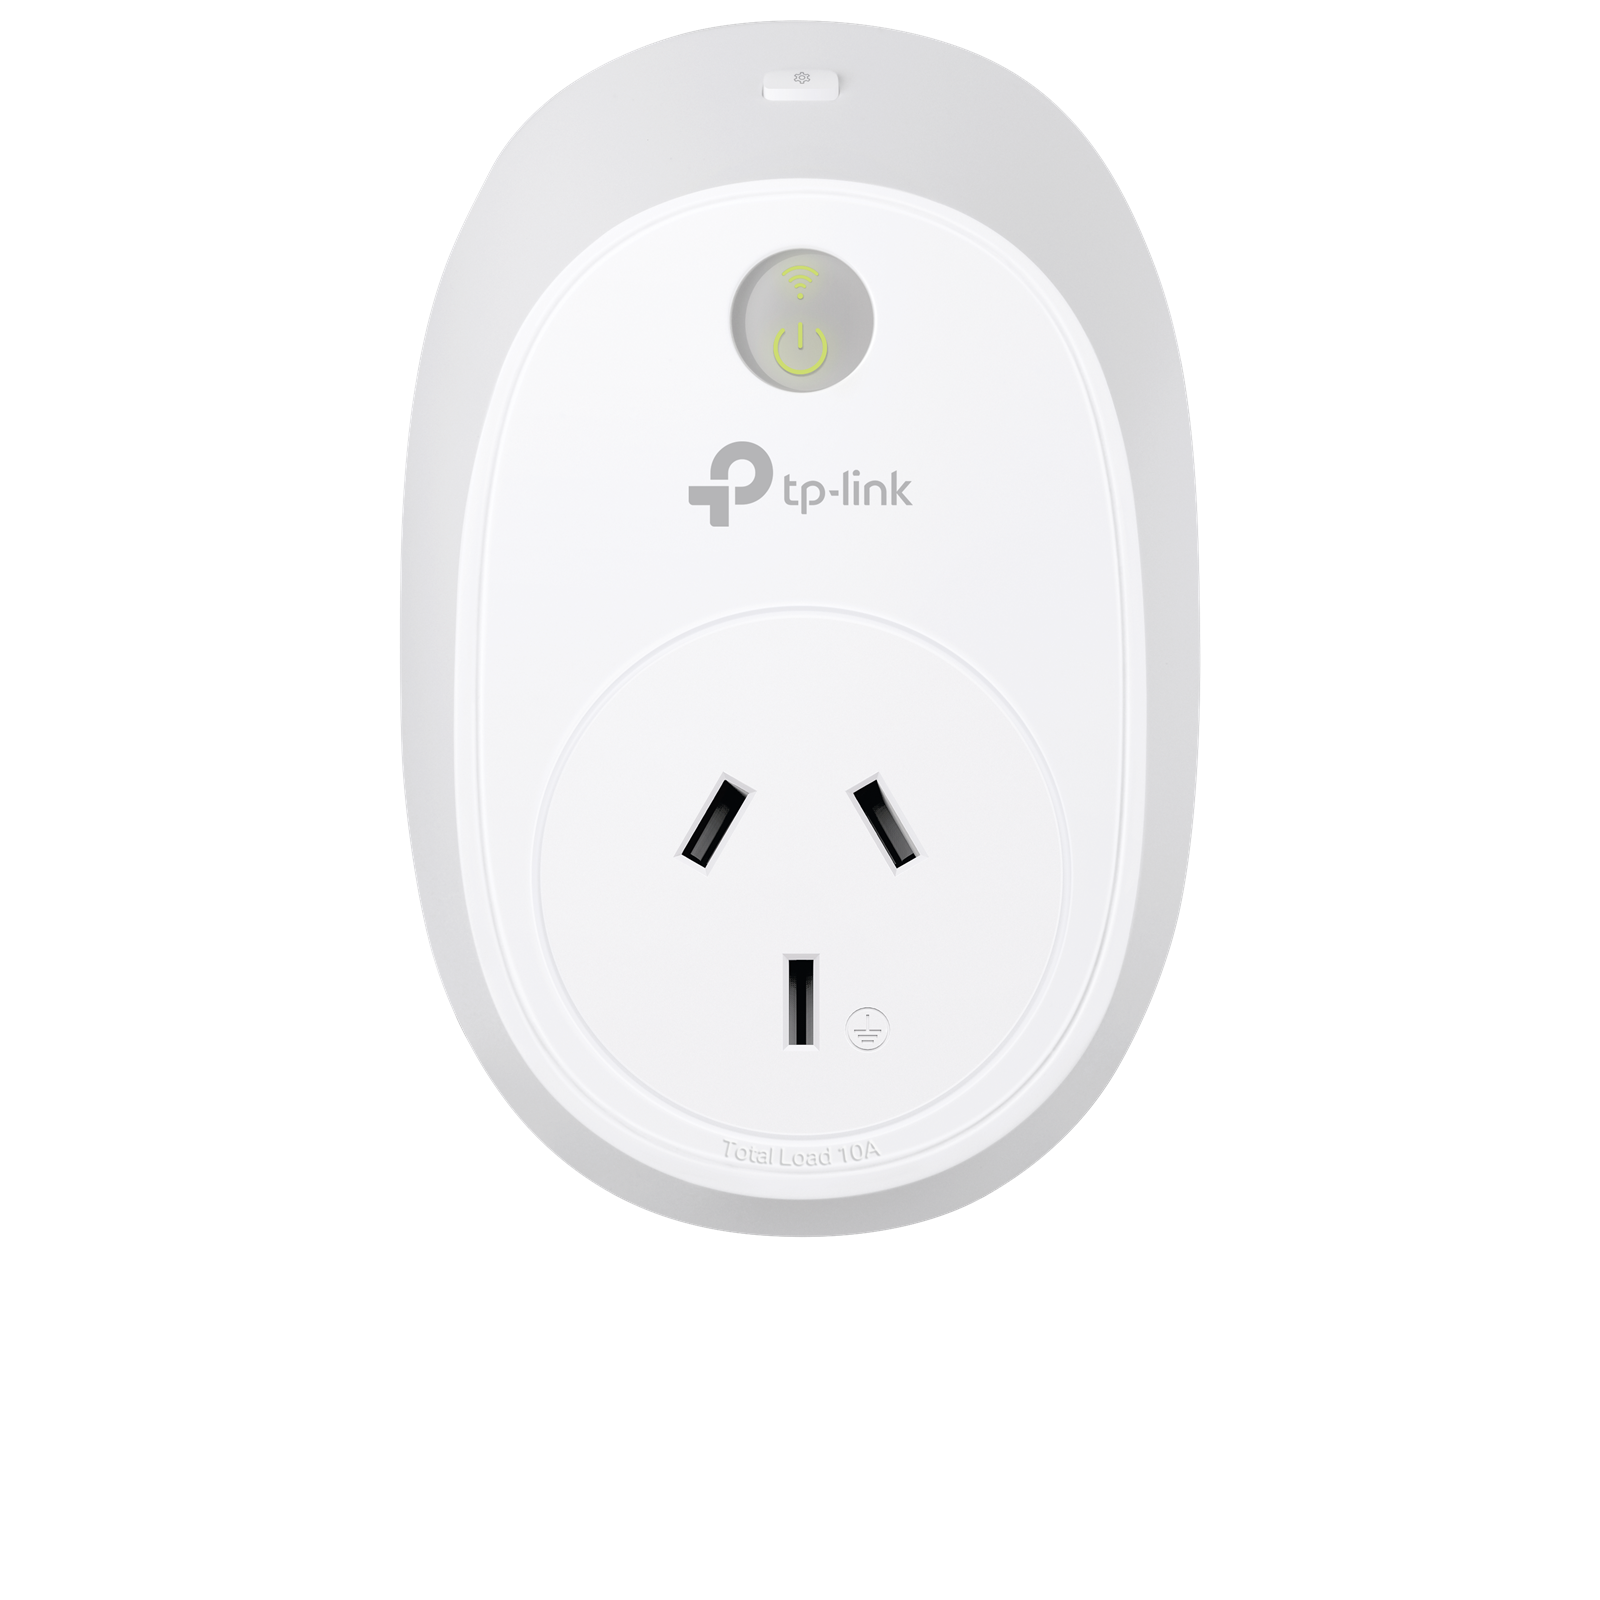 TP LINK HS110 Smart Wi-Fi Plug With Energy Monitoring